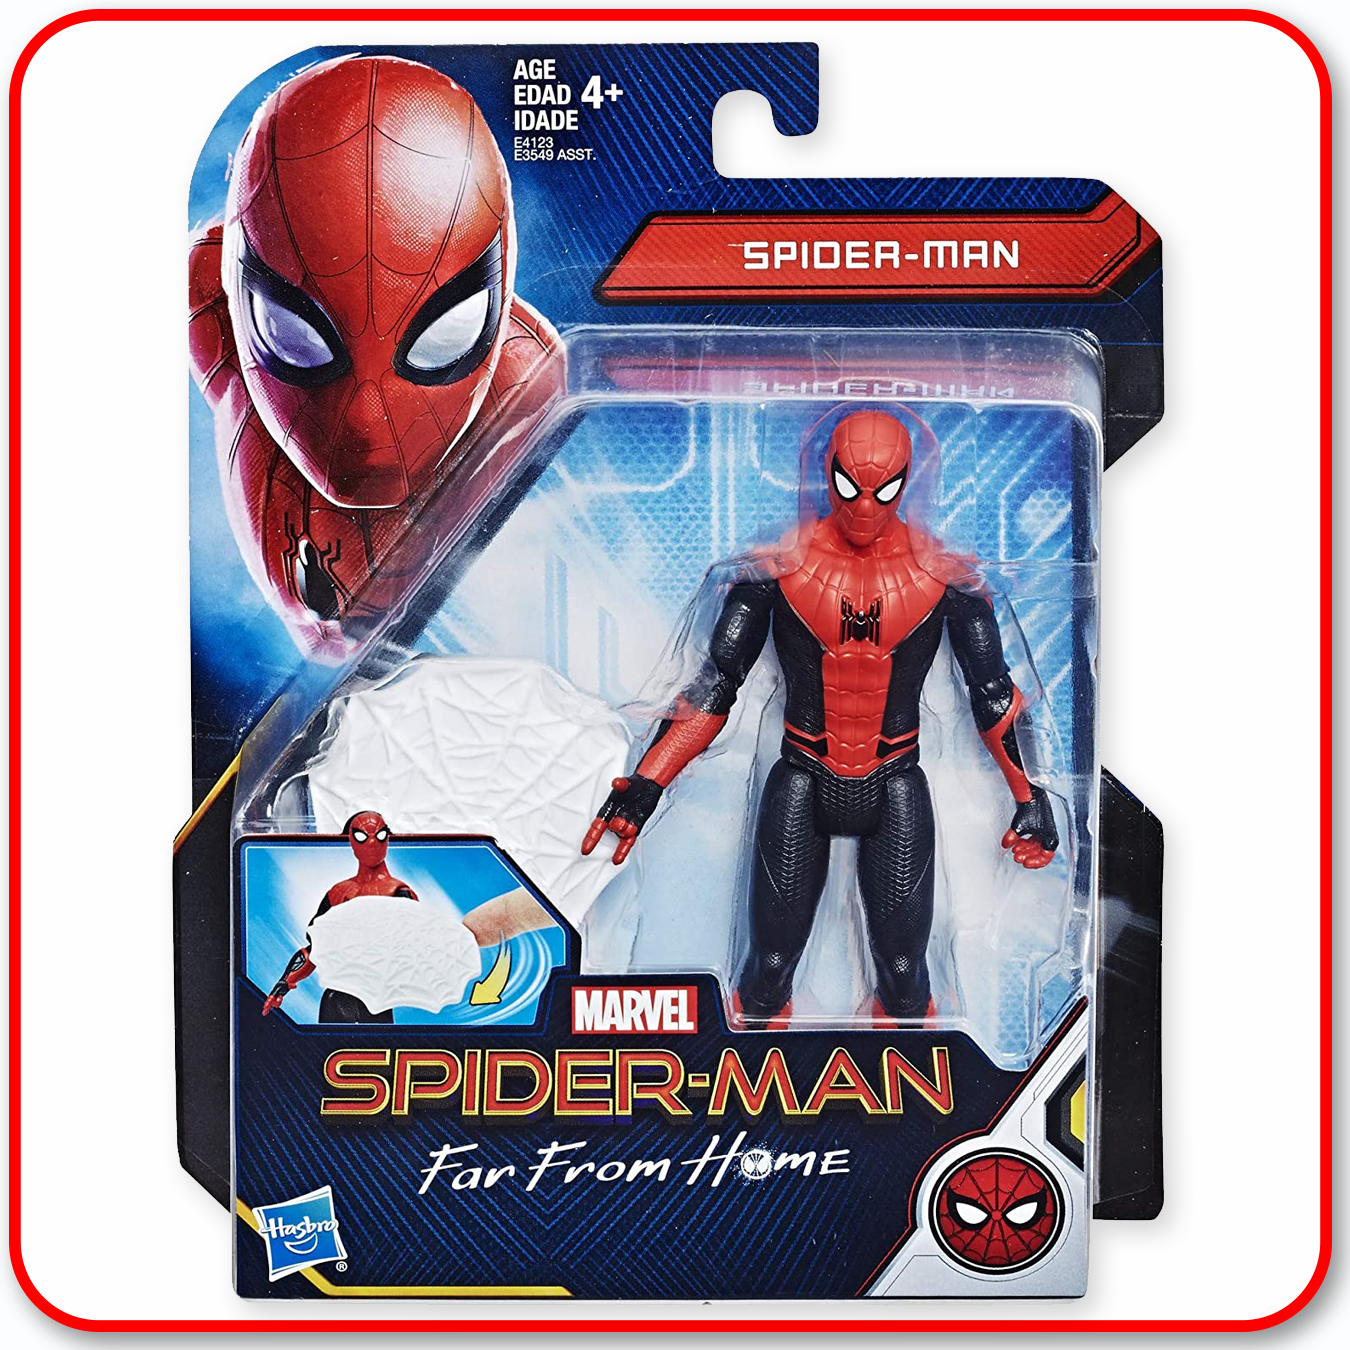 Spiderman - Far From Home 6in Figure - Web Shield Spiderman